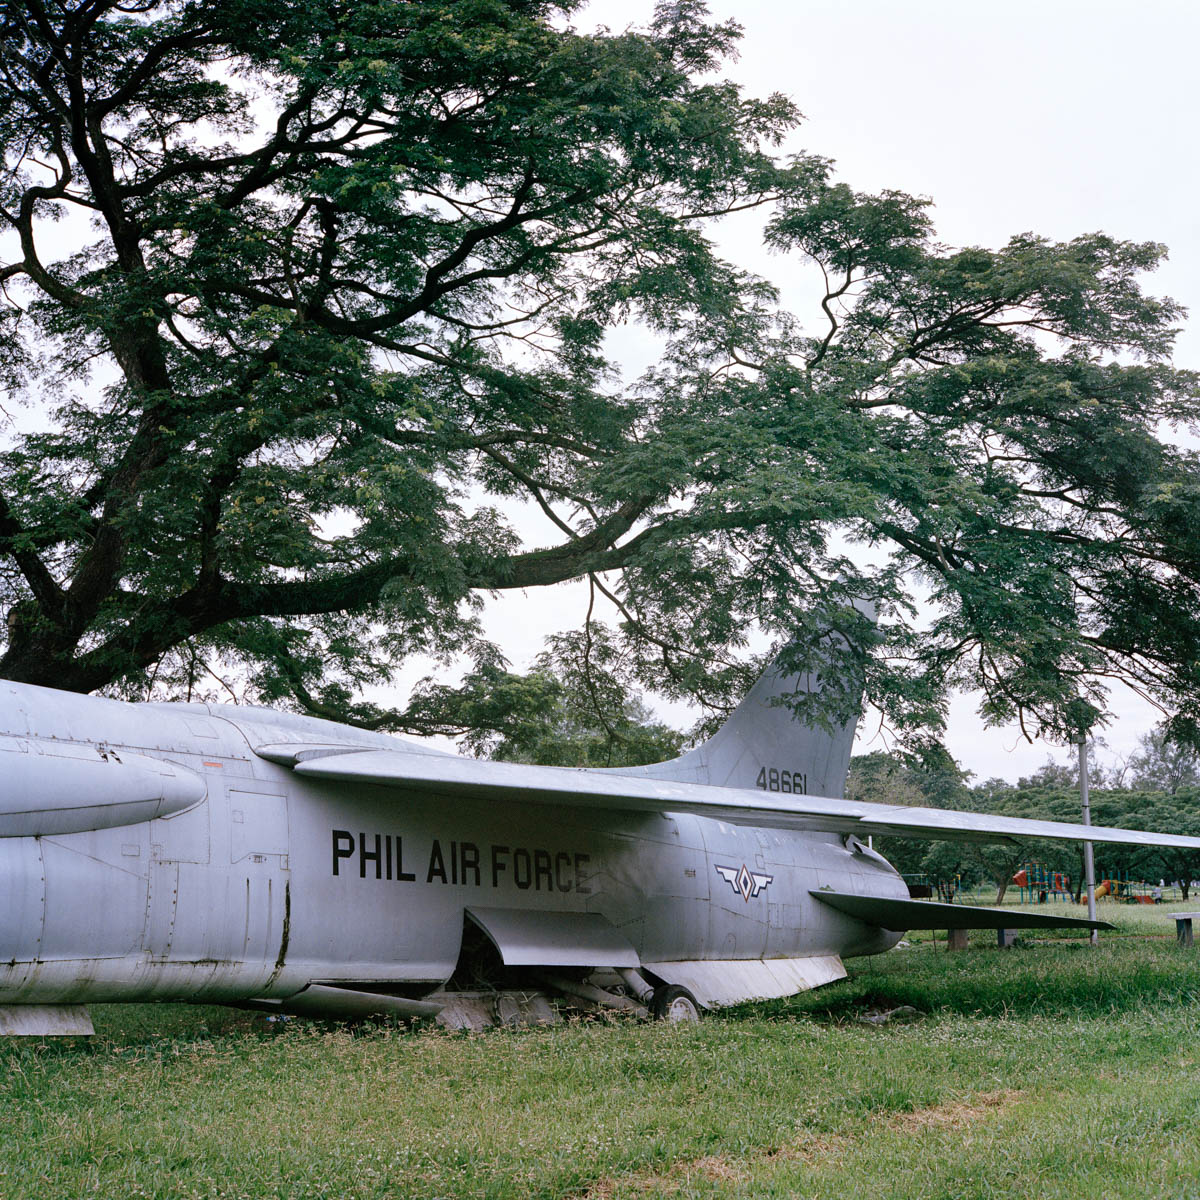 "Vought F-8H Crusader - An old Vought F-8H Crusader of the Philippines Air Force (ex U.S. Navy aircraft) in the former Clark Air Force Base. Before the Pinatubo eruption in 1991, the former Clark US Air Force Base was the largest US military air base outside of the United States. It counted 150'000 soldiers. The Americans pulled out after the eruption and the base became a special economic zone.  Angeles City, Philippines, August 2014. - Copyright © © S. Borcard - N. Metraux - Angeles - Central Luzon - Philippines - <A href=""https://maps.google.com/?ll=15.168055,120.586388&z=16"" target=""_blank"">(Map Vought F-8H Crusader)</A>"